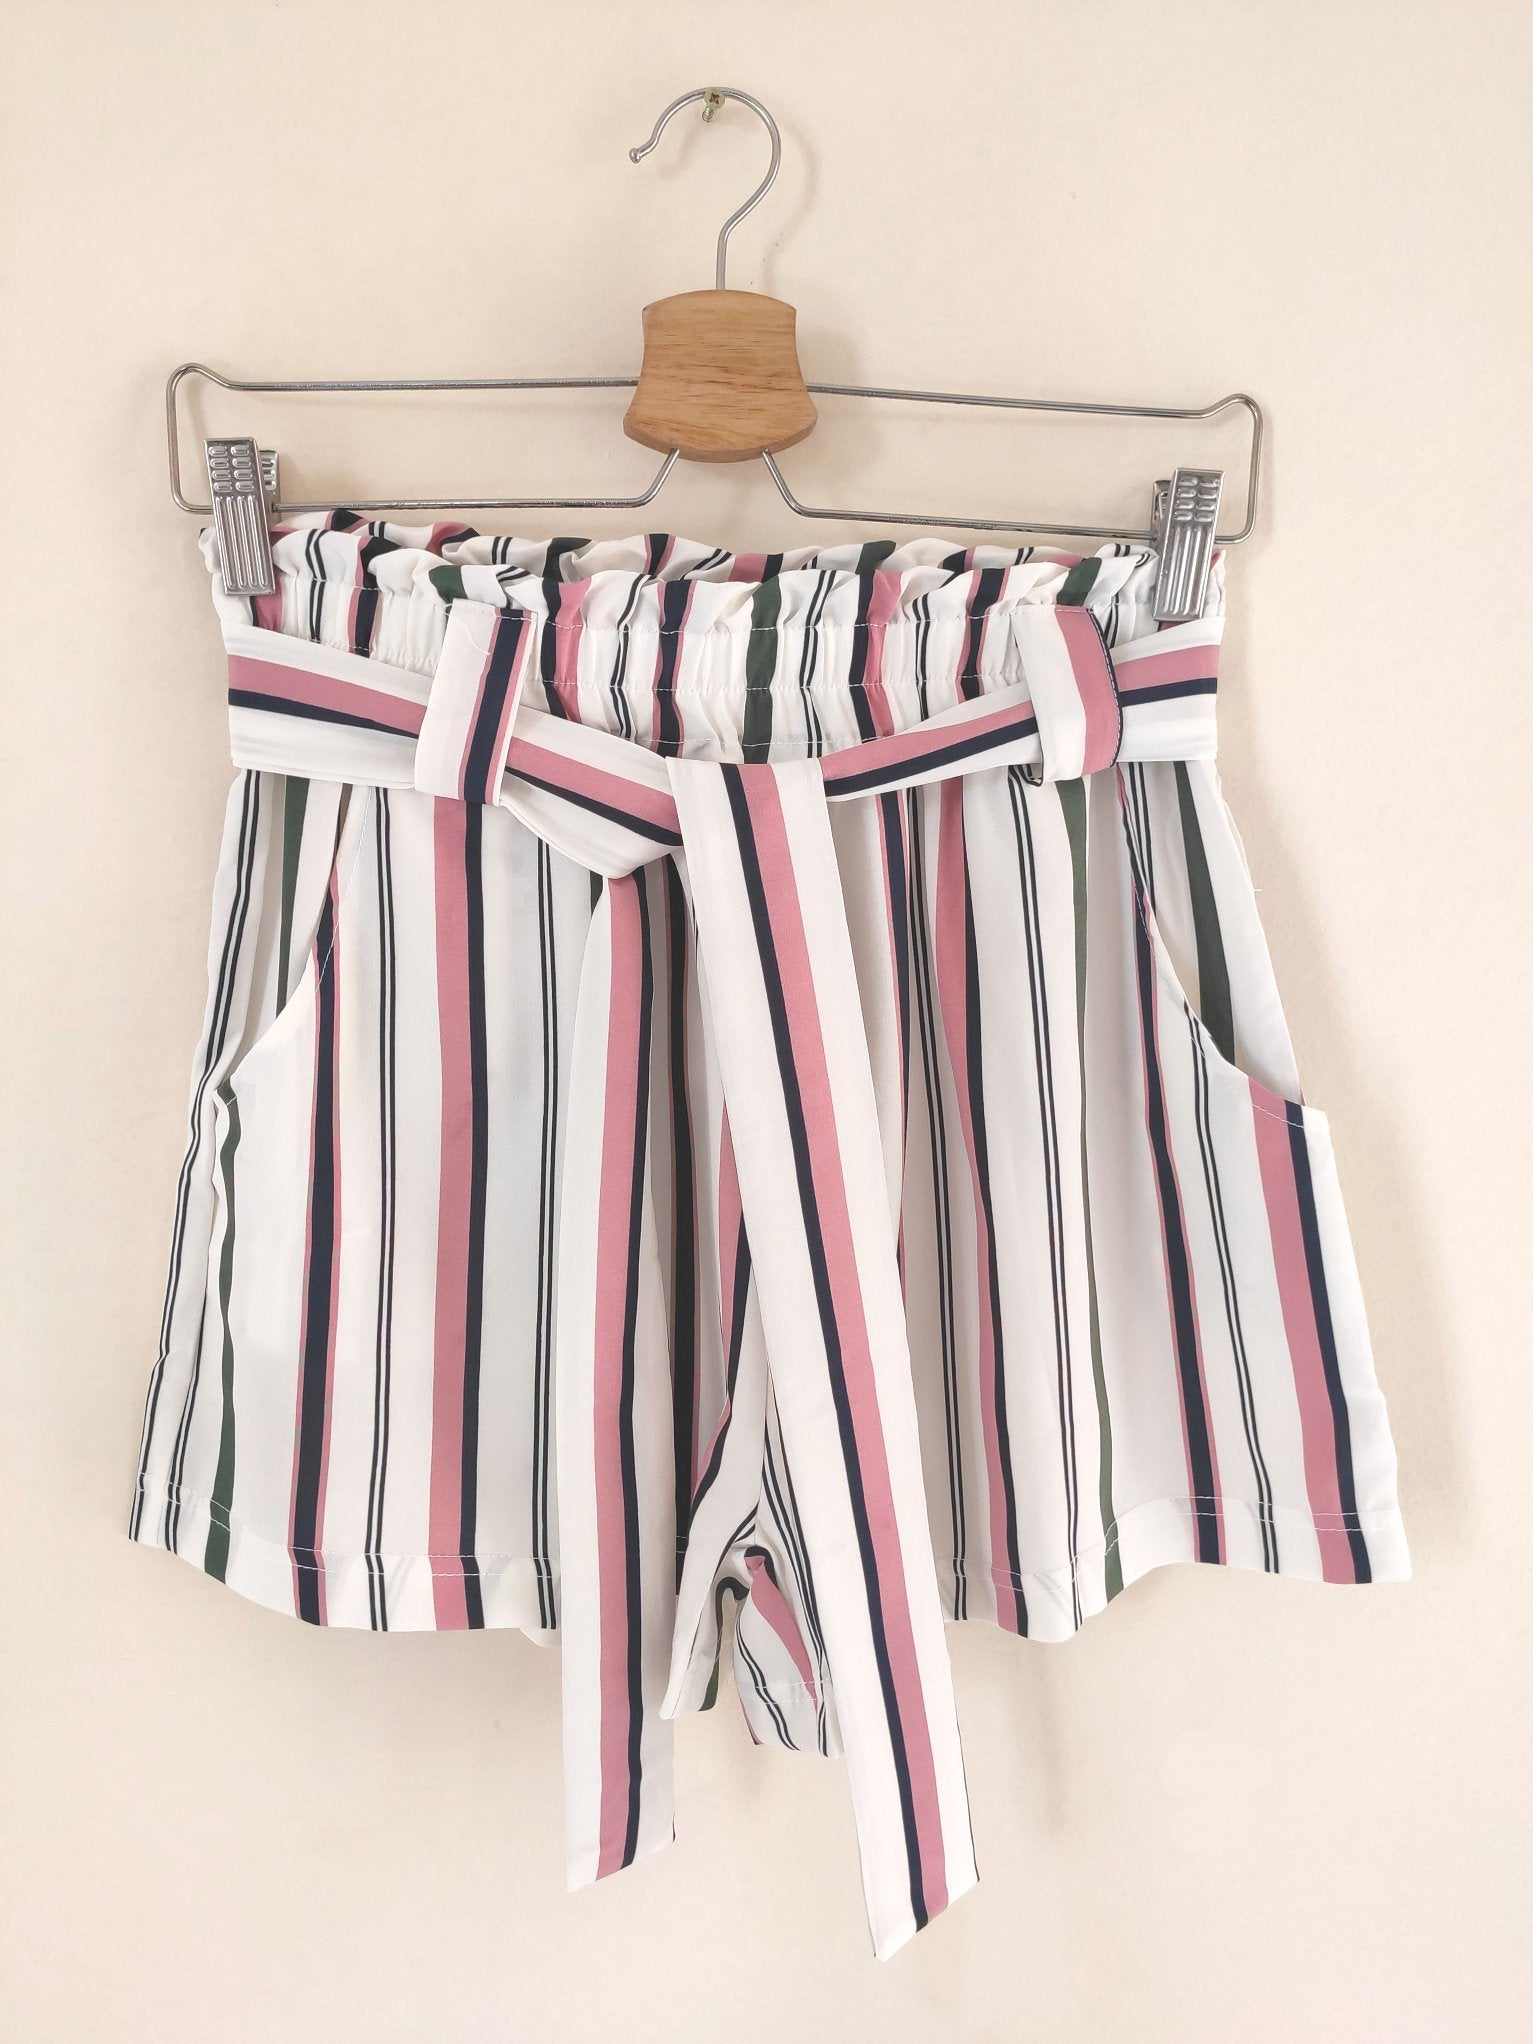 short-shorts-with-stripes-and-bow-front-on-a-hanger